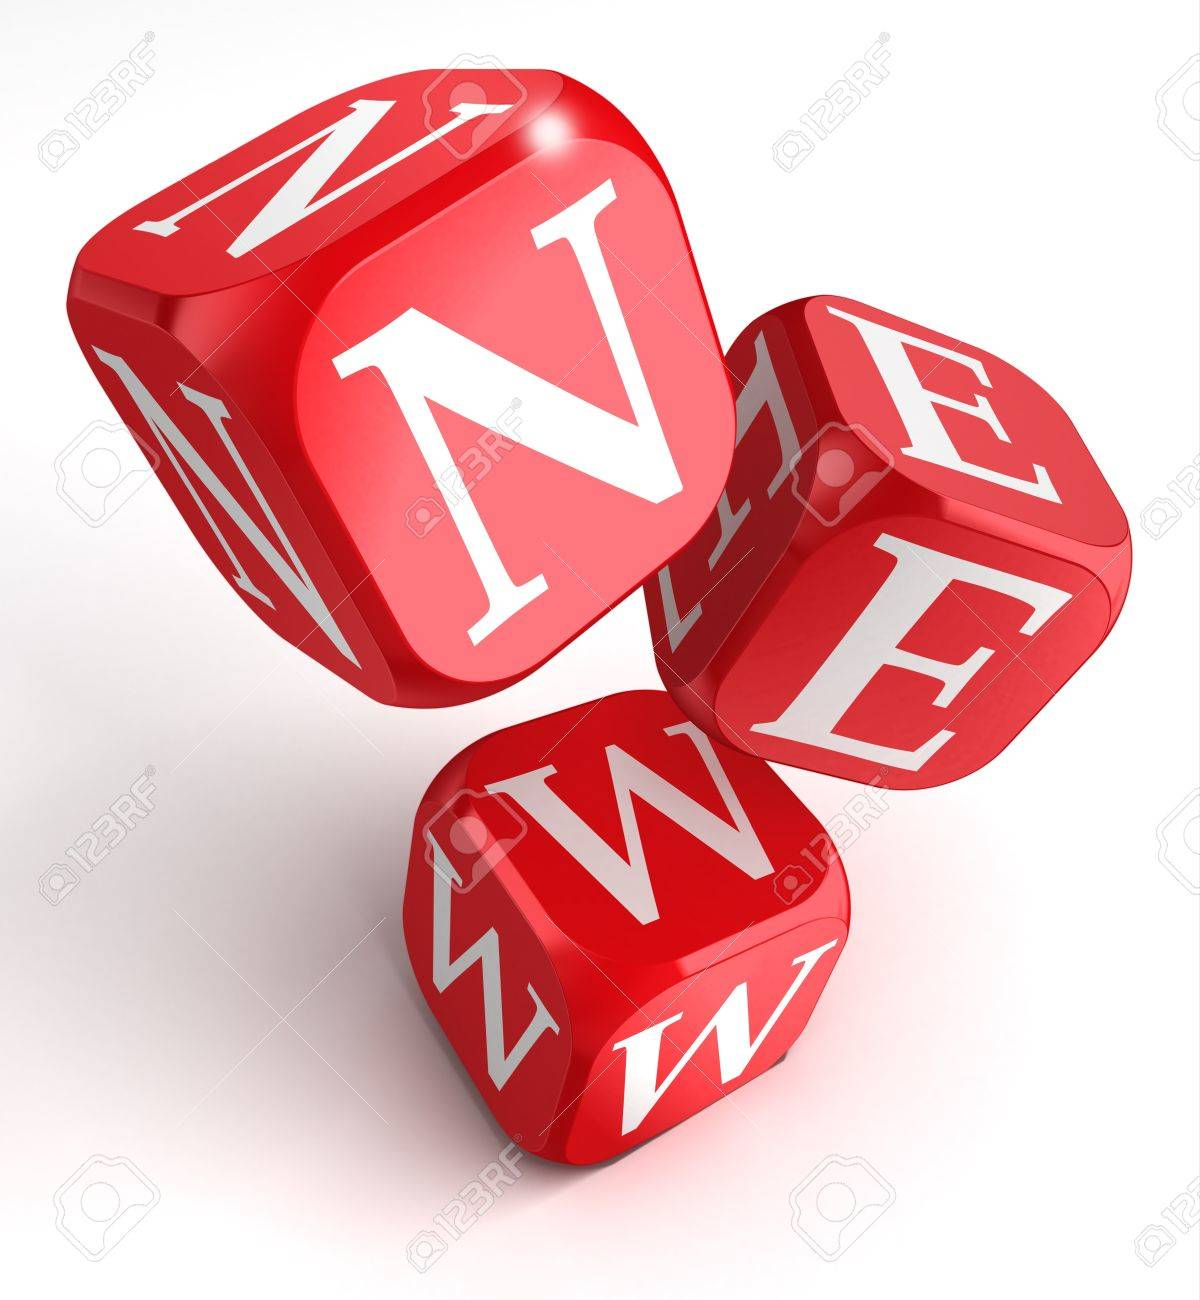 new word on red box dice on white background. Stock Photo - 16217502